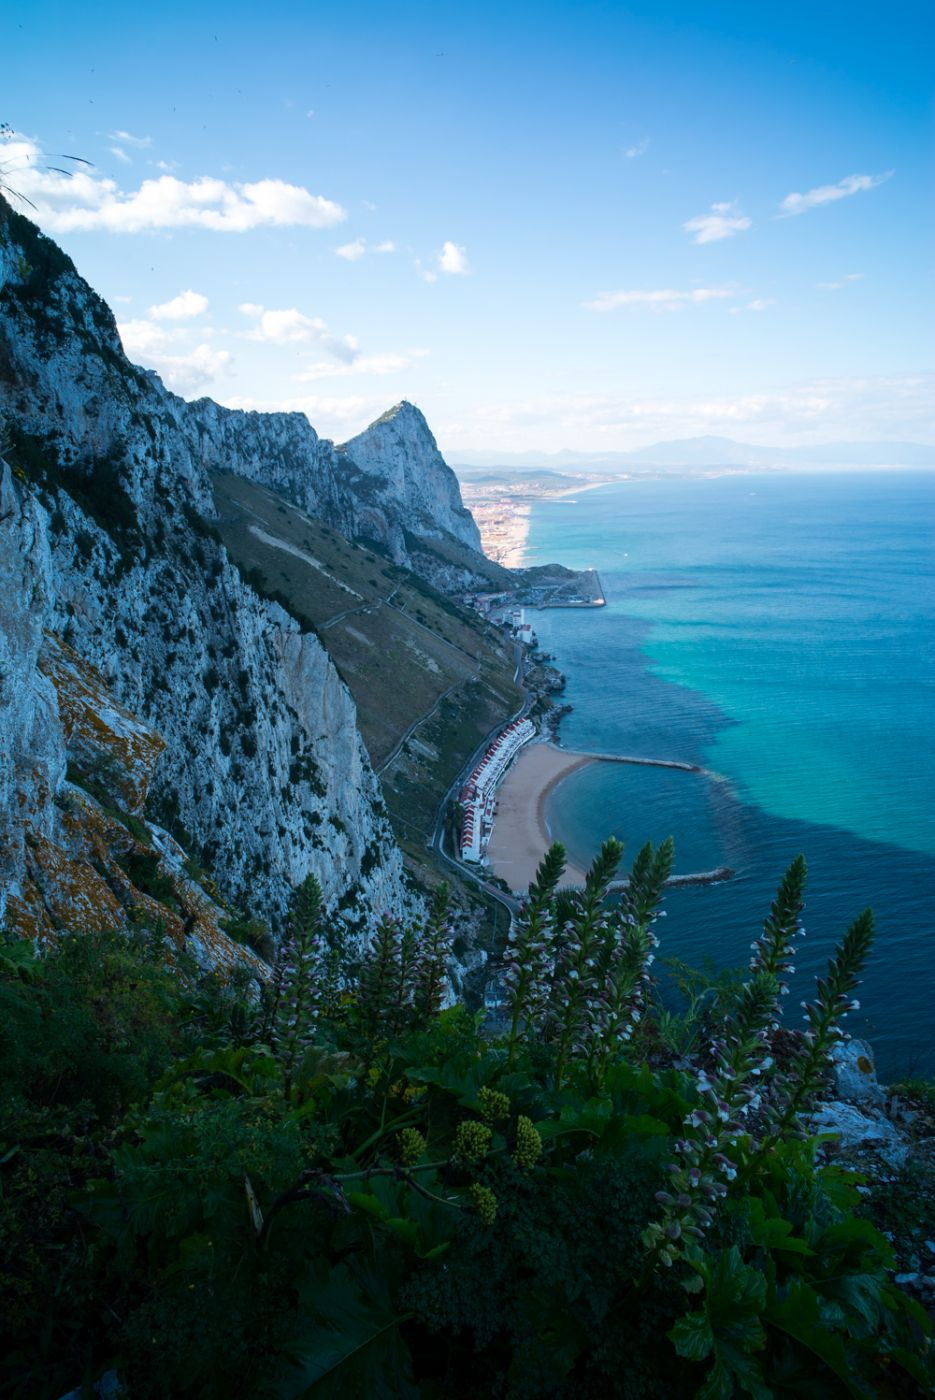 Hiking to the Top of the Rock of Gibraltar | East side of the Rock